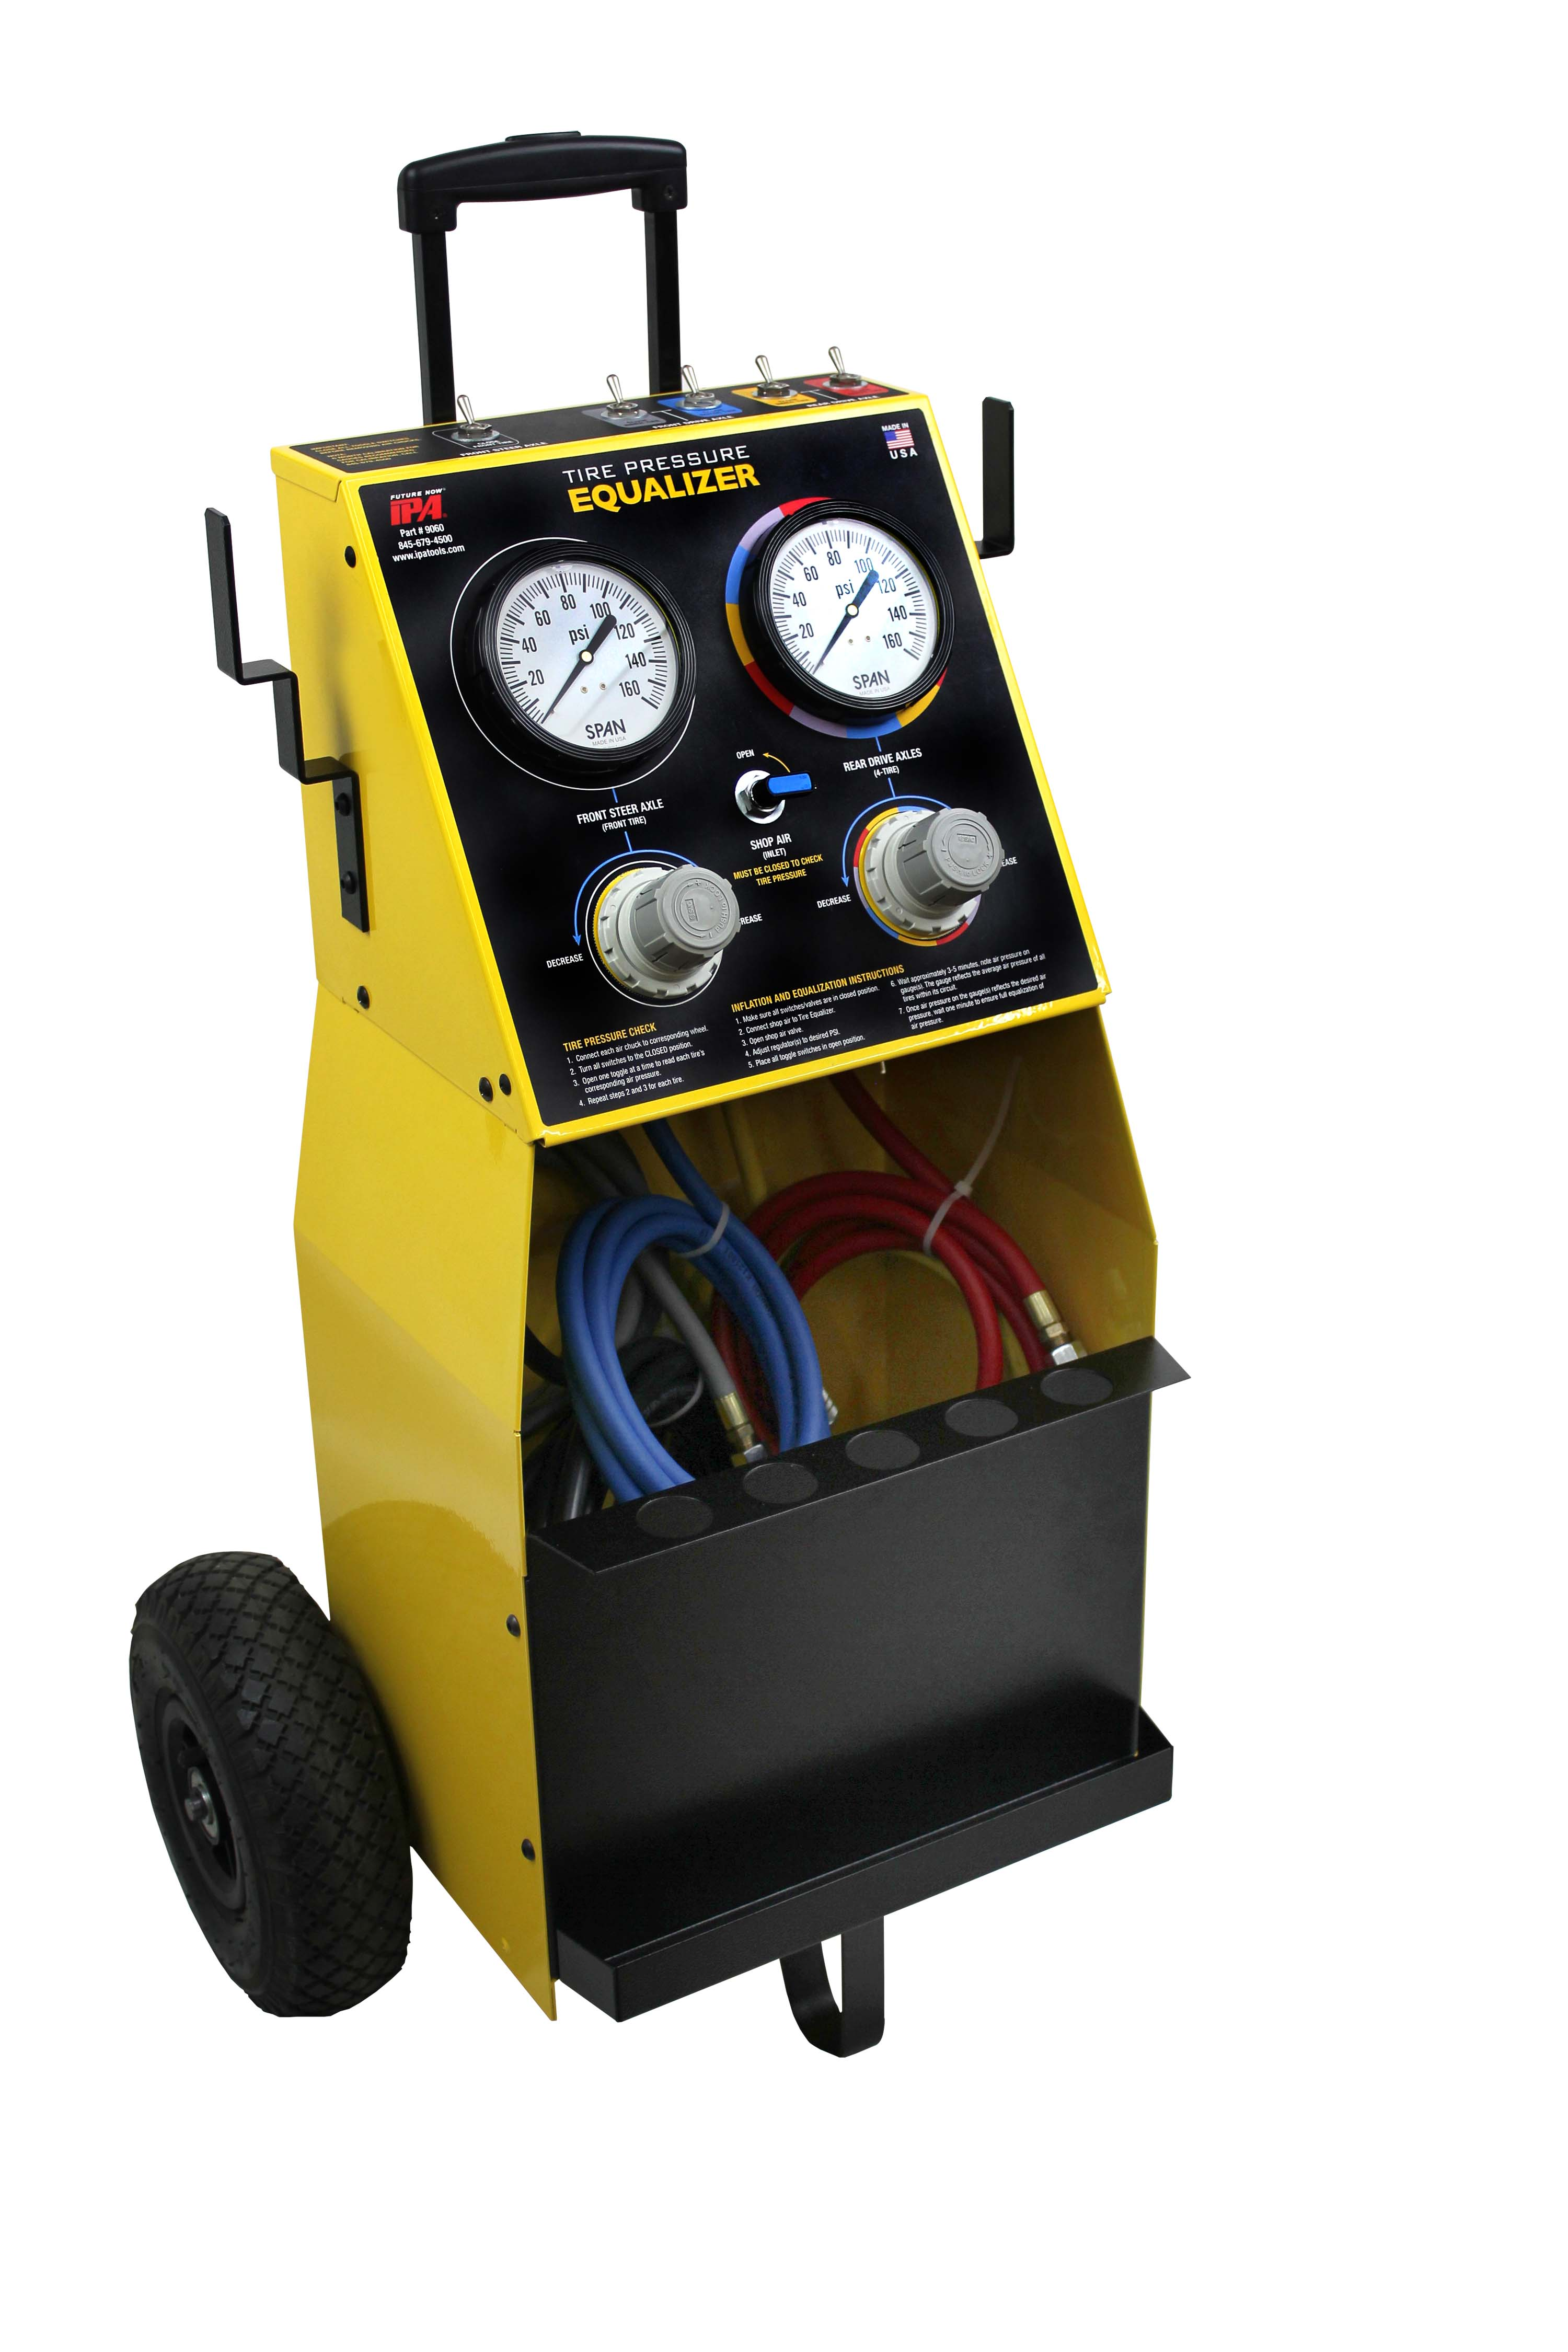 IPA Redesigns Mobile Tire Pressure Equalizer System